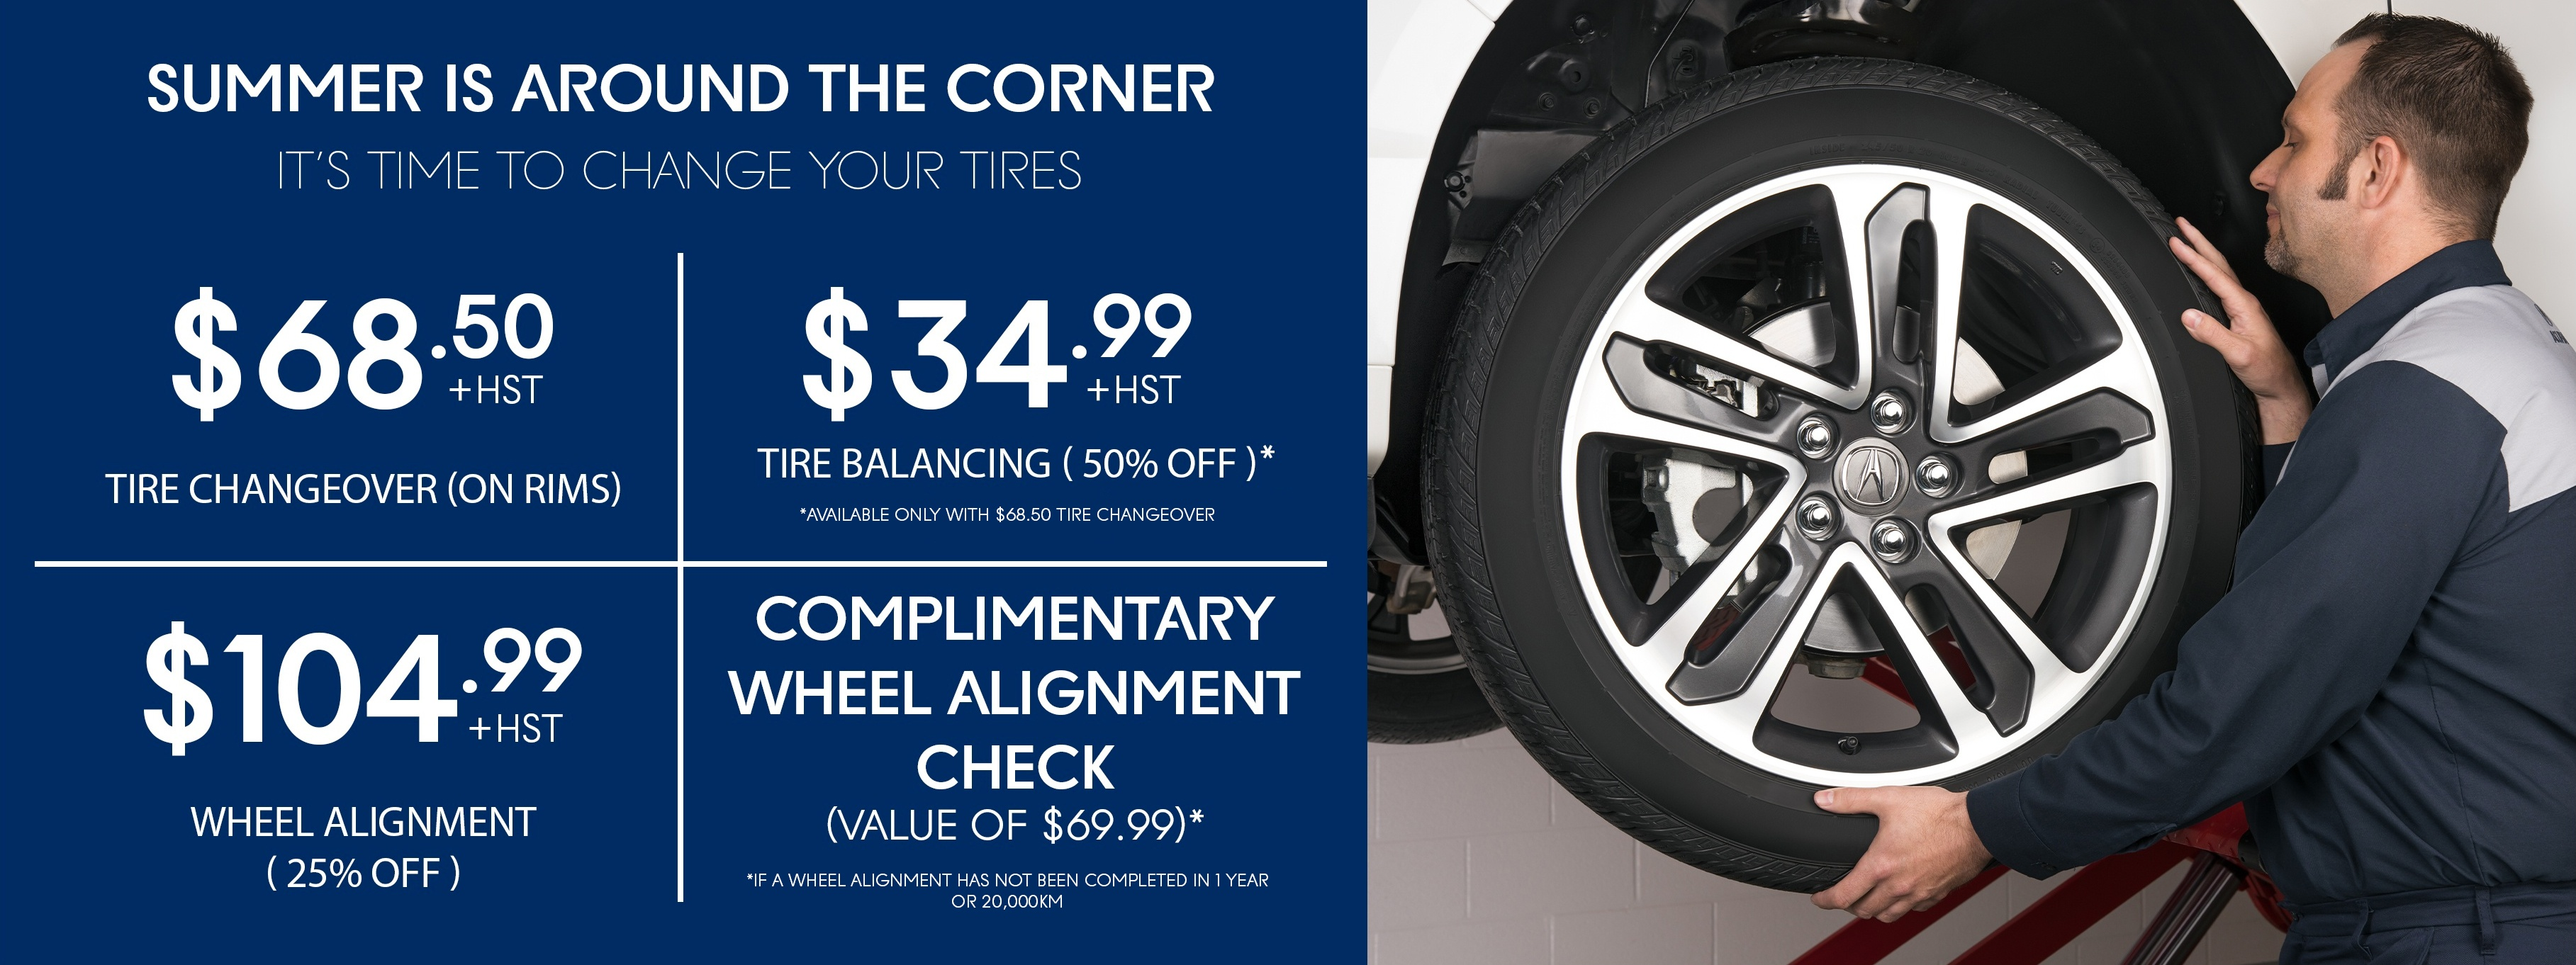 PA-Service-Promo-Wheels-Alignment-May-2020